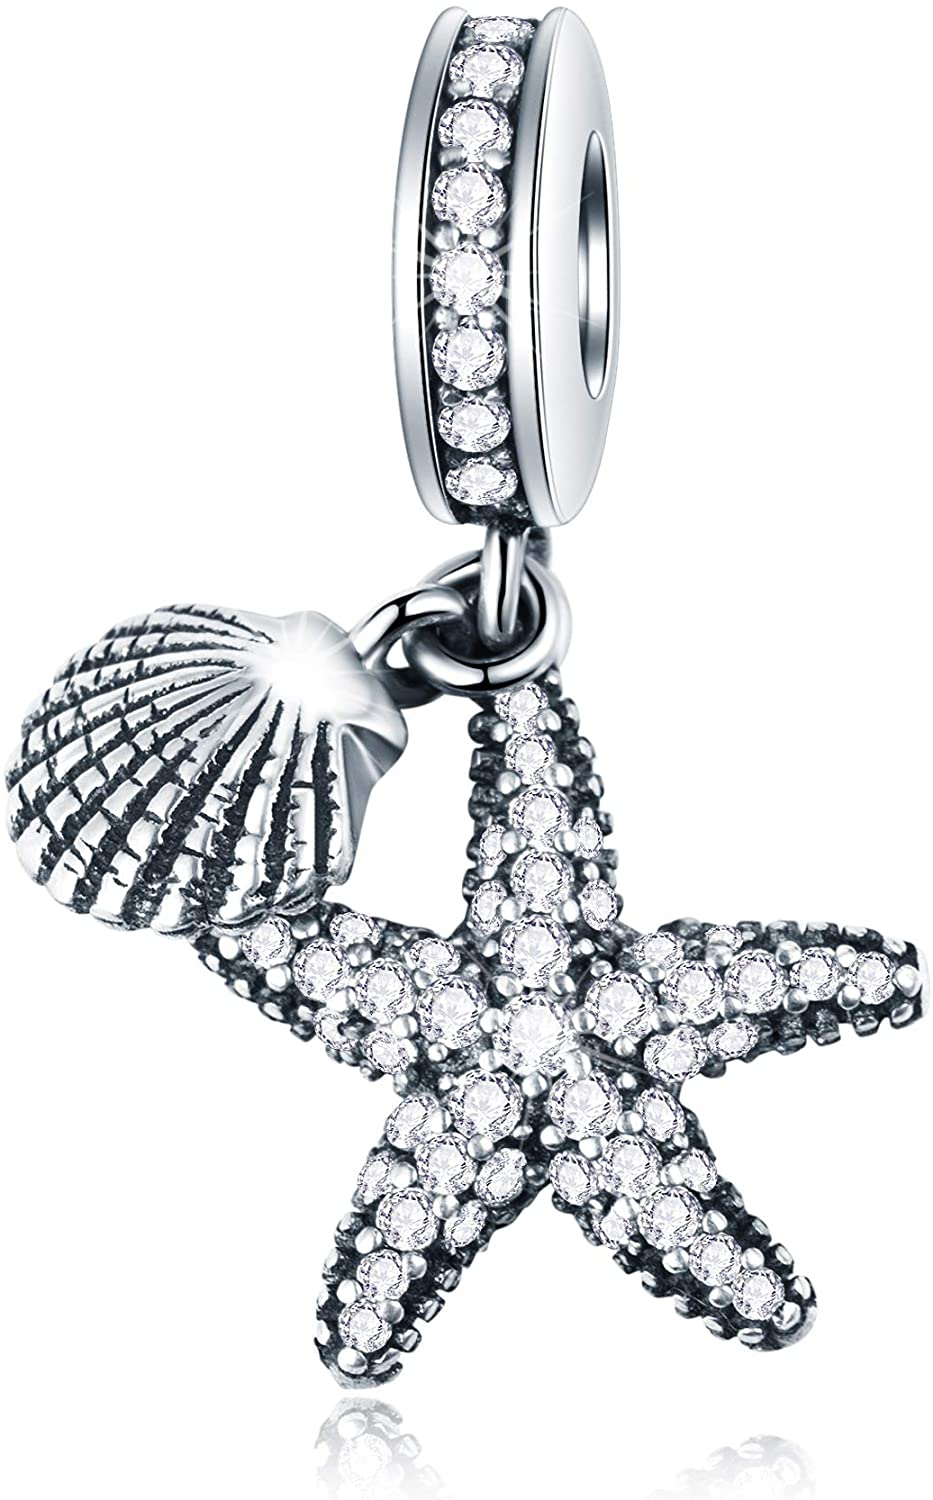 GEMDAZZ Ocean Series Charm Collection Fit European Women Bracelets - 925 Sterling Silver Starfish Shell Devil Fish Beads and Pendant, Birthday for Children/Friends/Marine Biologist